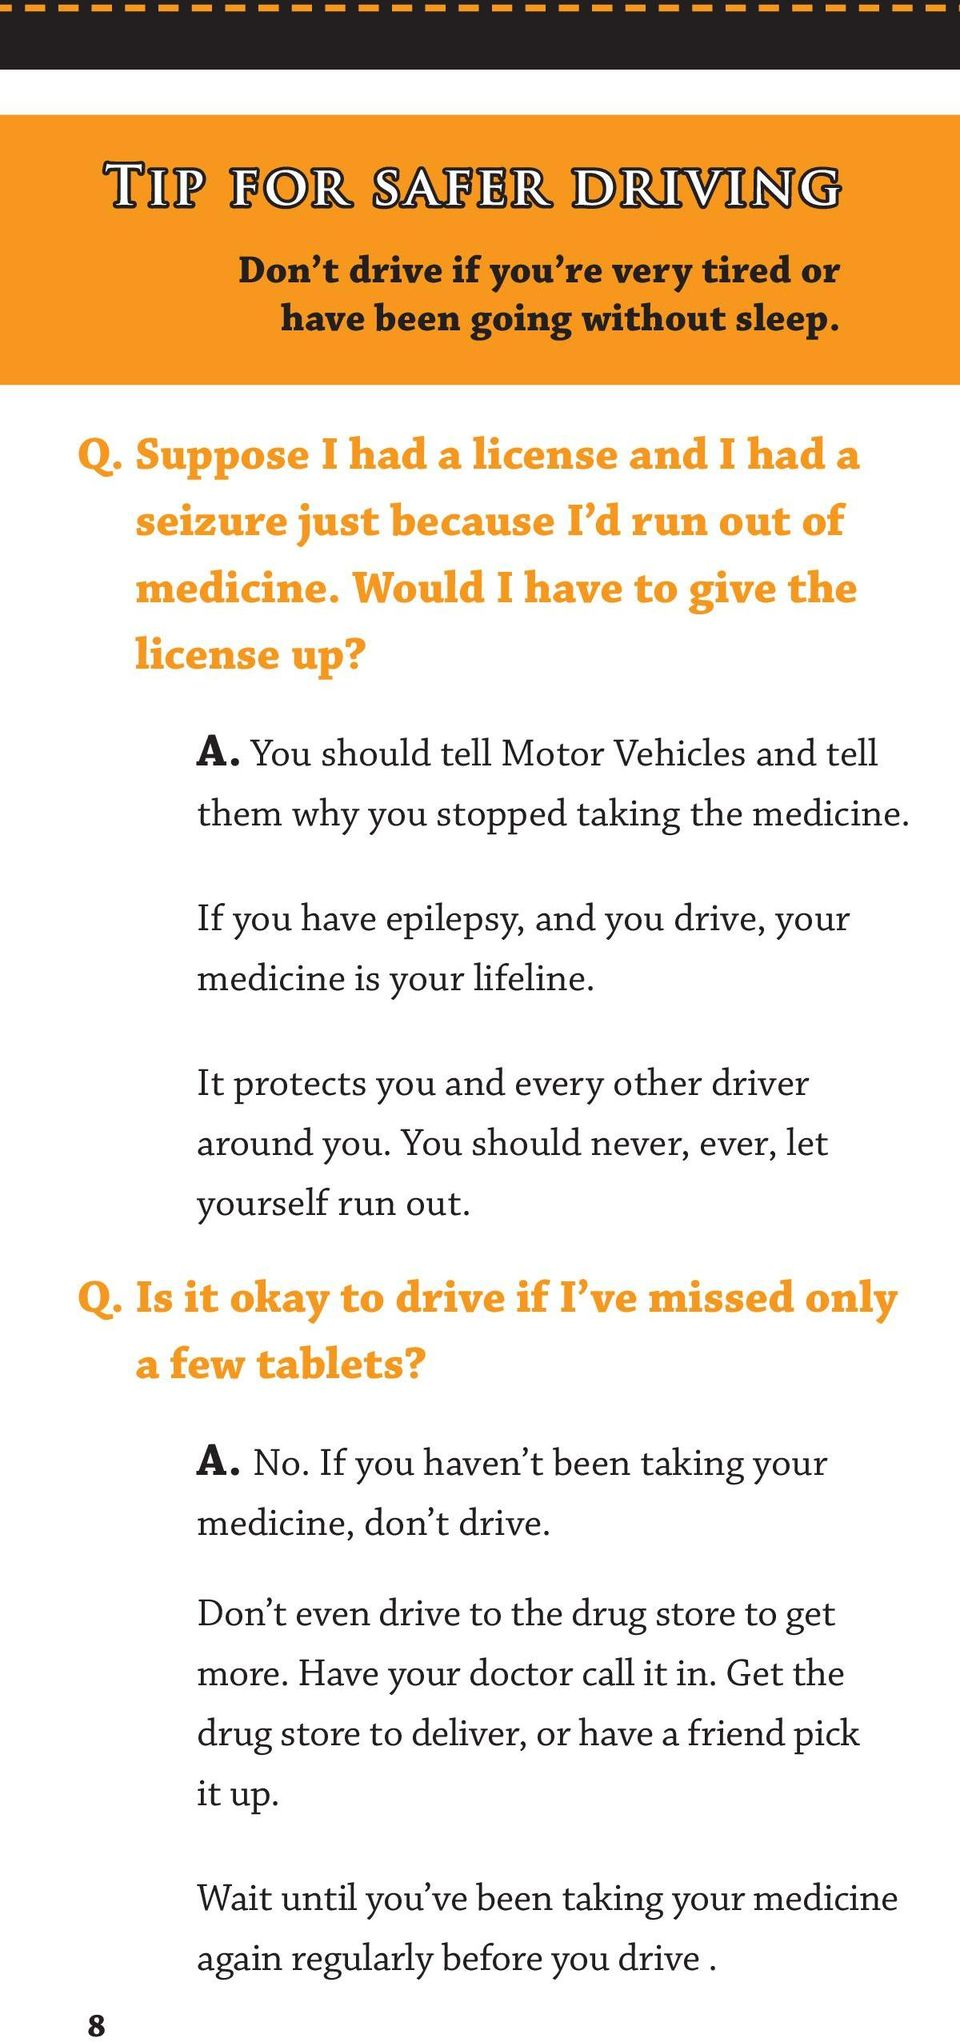 It protects you and every other driver around you. You should never, ever, let yourself run out. Q. Is it okay to drive if I ve missed only a few tablets? A. No.